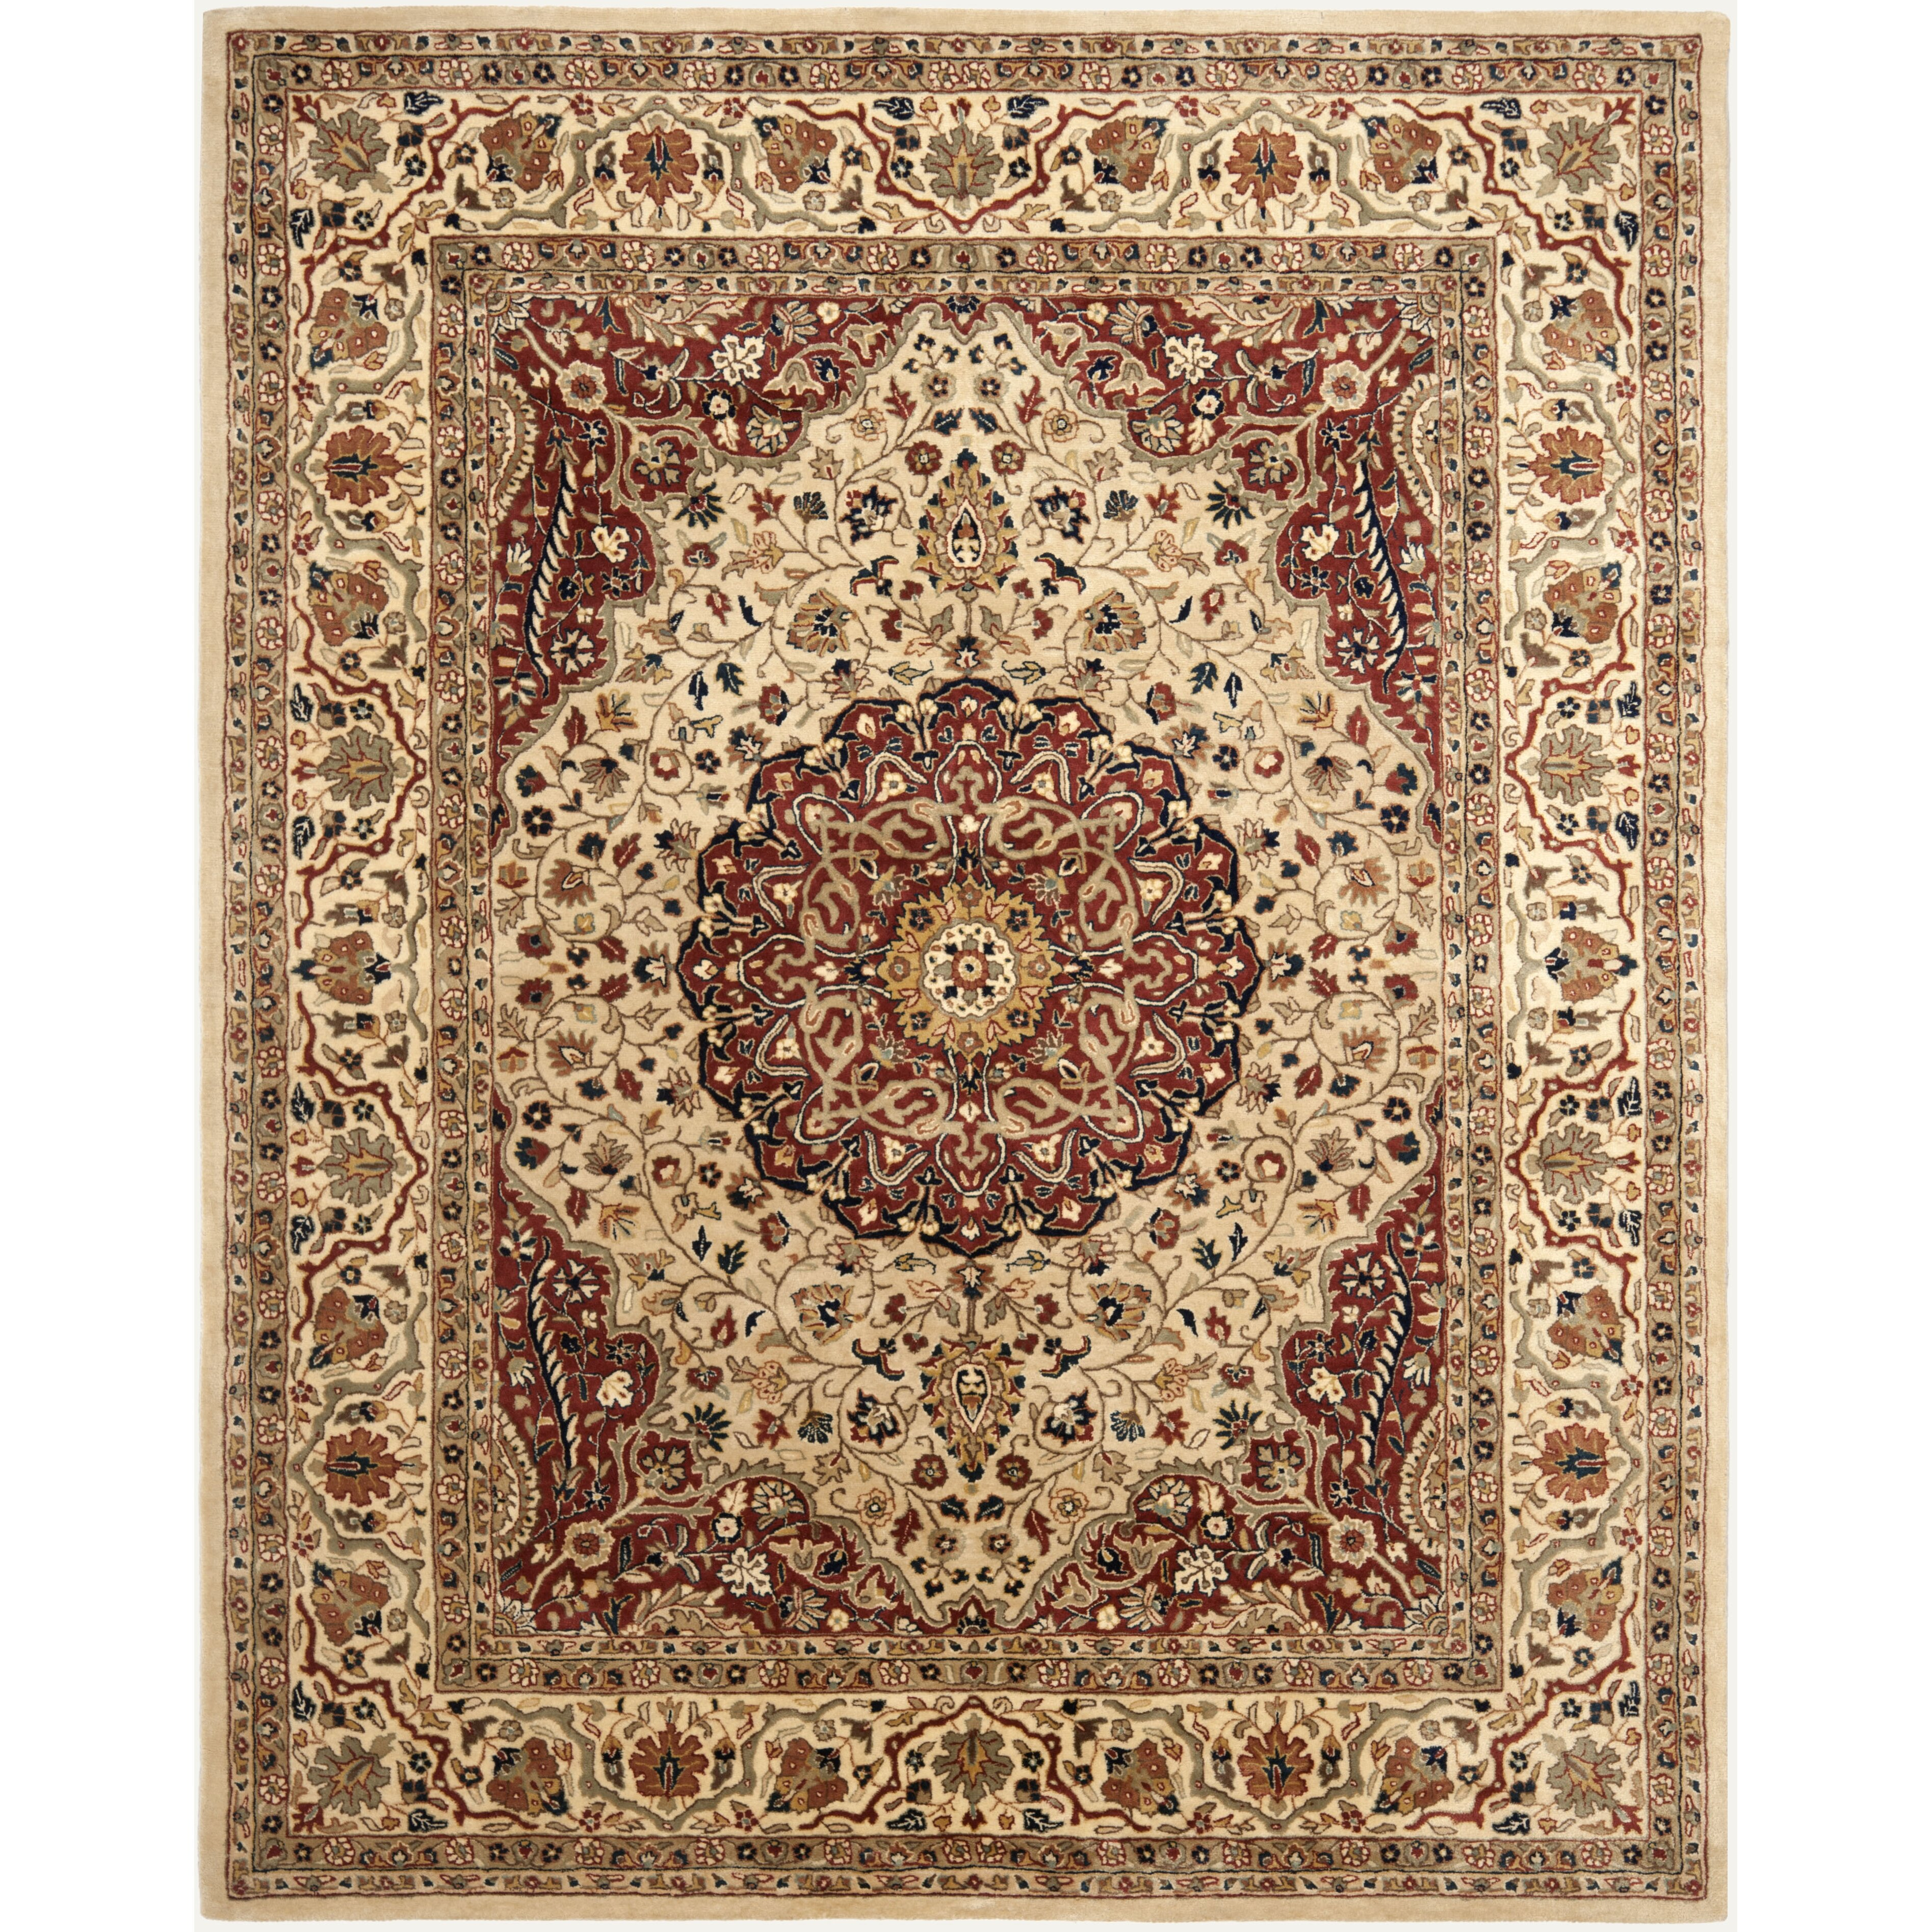 Area Rug Persian 9x12 Oriental Carpet Ivory Wool: Safavieh Persian Legend Ivory/Red Area Rug & Reviews